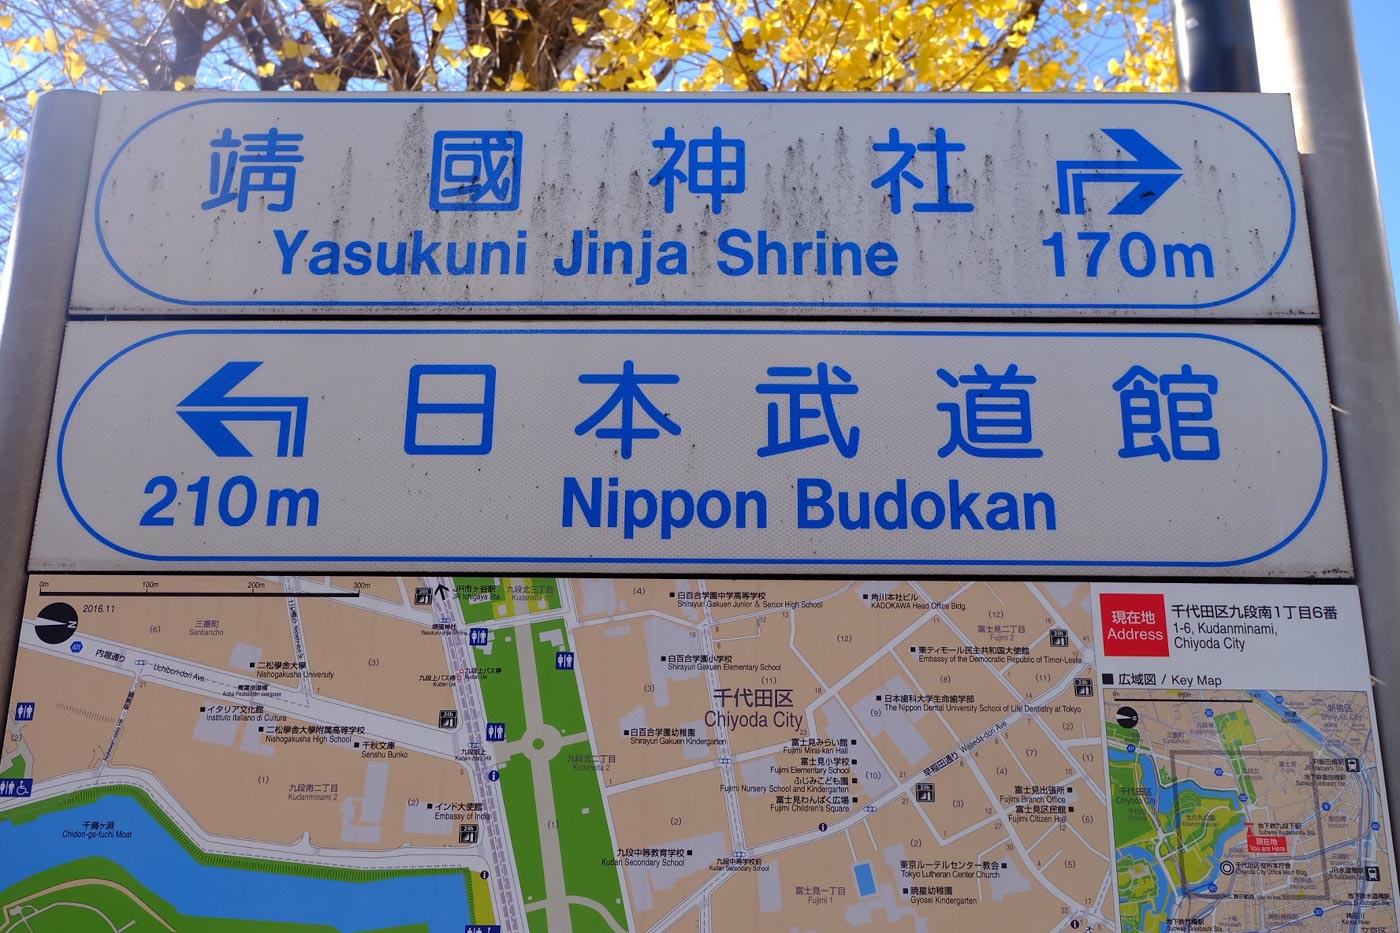 HEART OF TOKYO. It is best to get off at Kudanshita station in order to get to Nippon Budokan. Photo by Beatrice Go/Rappler